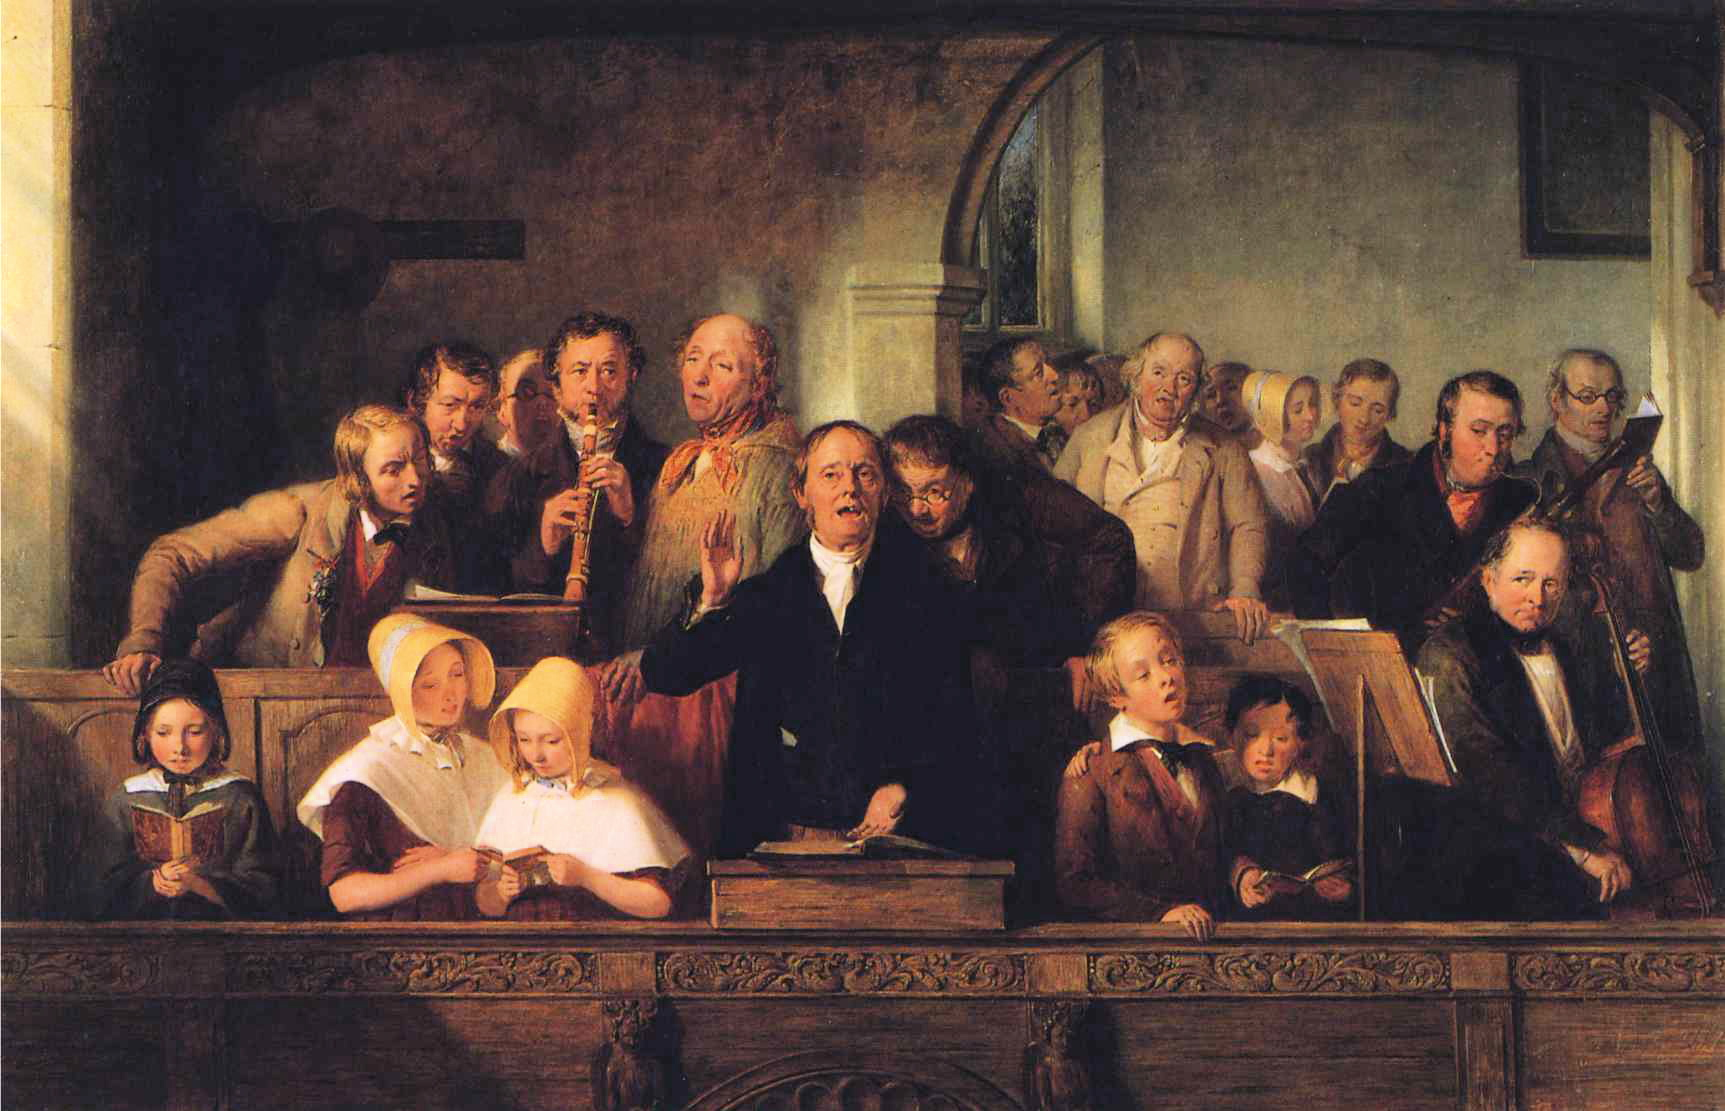 File:Thomas Webster - The Village Choir.JPG - Wikimedia Commonswebster village